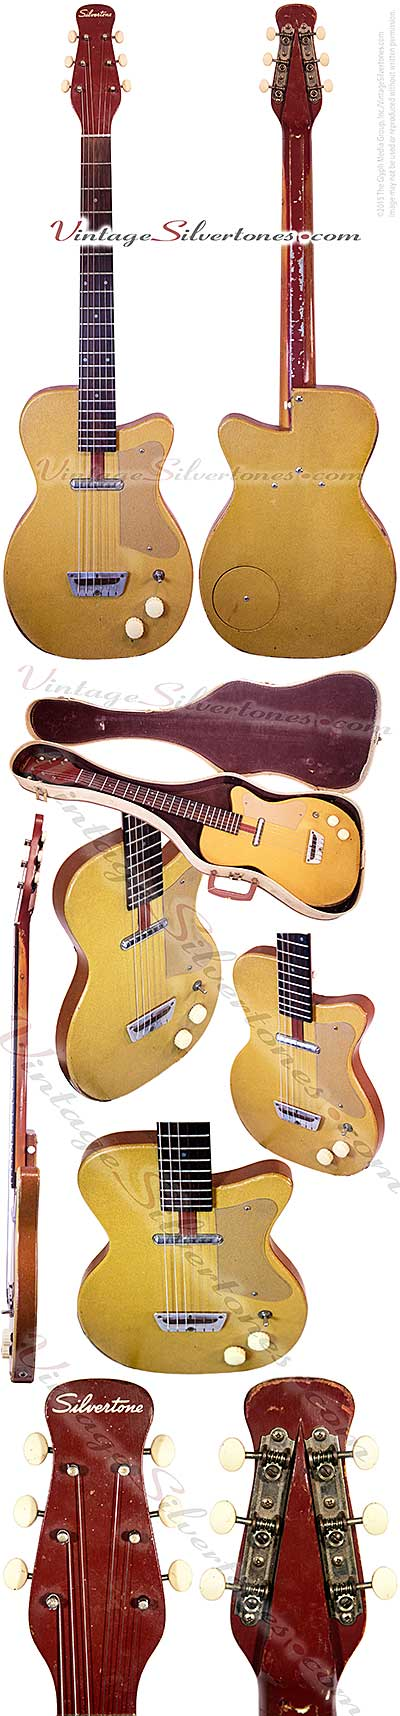 Silvertone 1357 made by Danelectro U1, one pickup, electric guitar, semi-hollow body,ginger vinyl finish tan vinyl binding, masonite body, lipstick pickup, rare, made in 1955